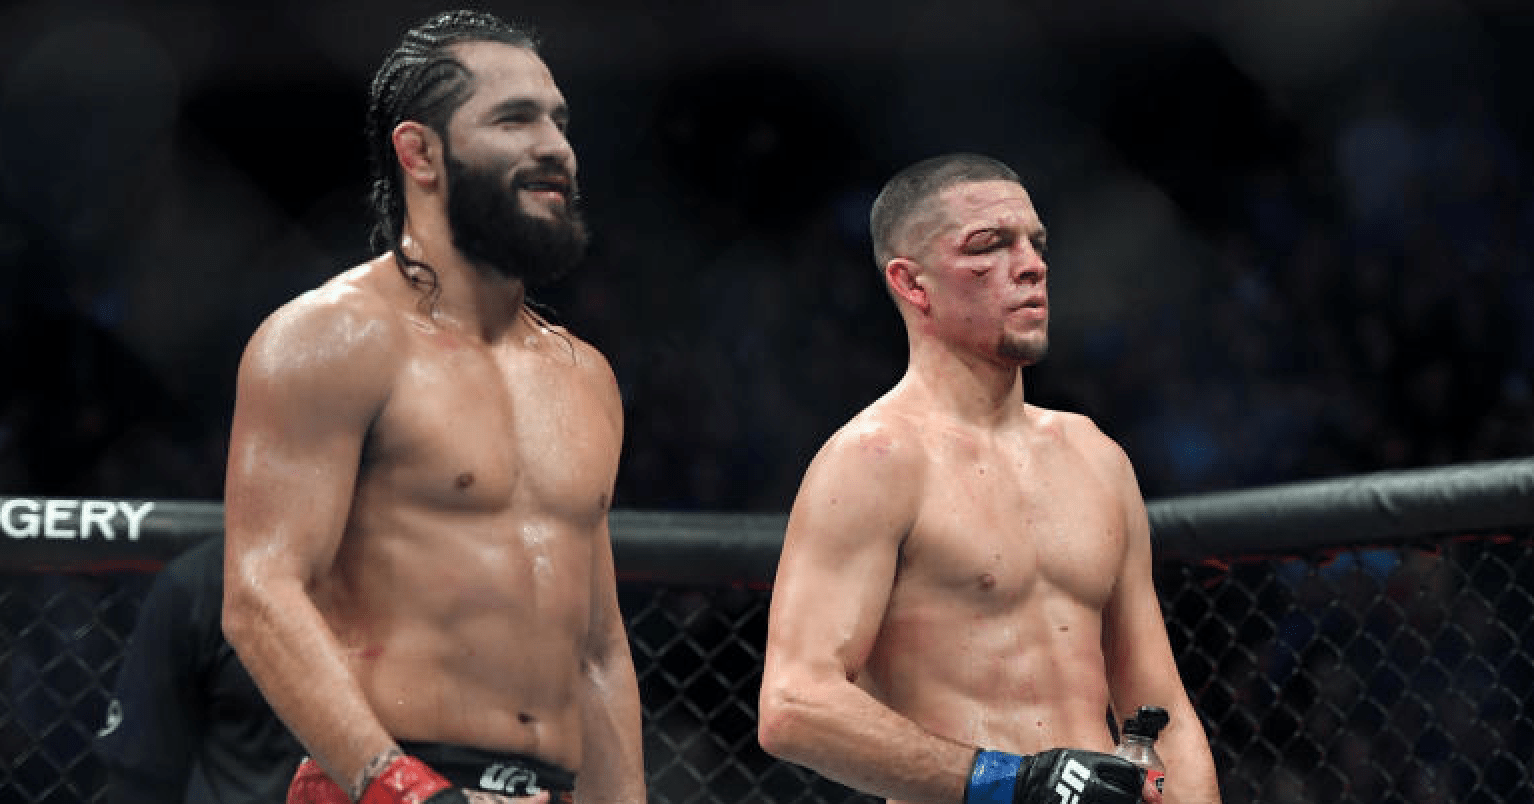 This Is How The MMA World Reacted To UFC 244